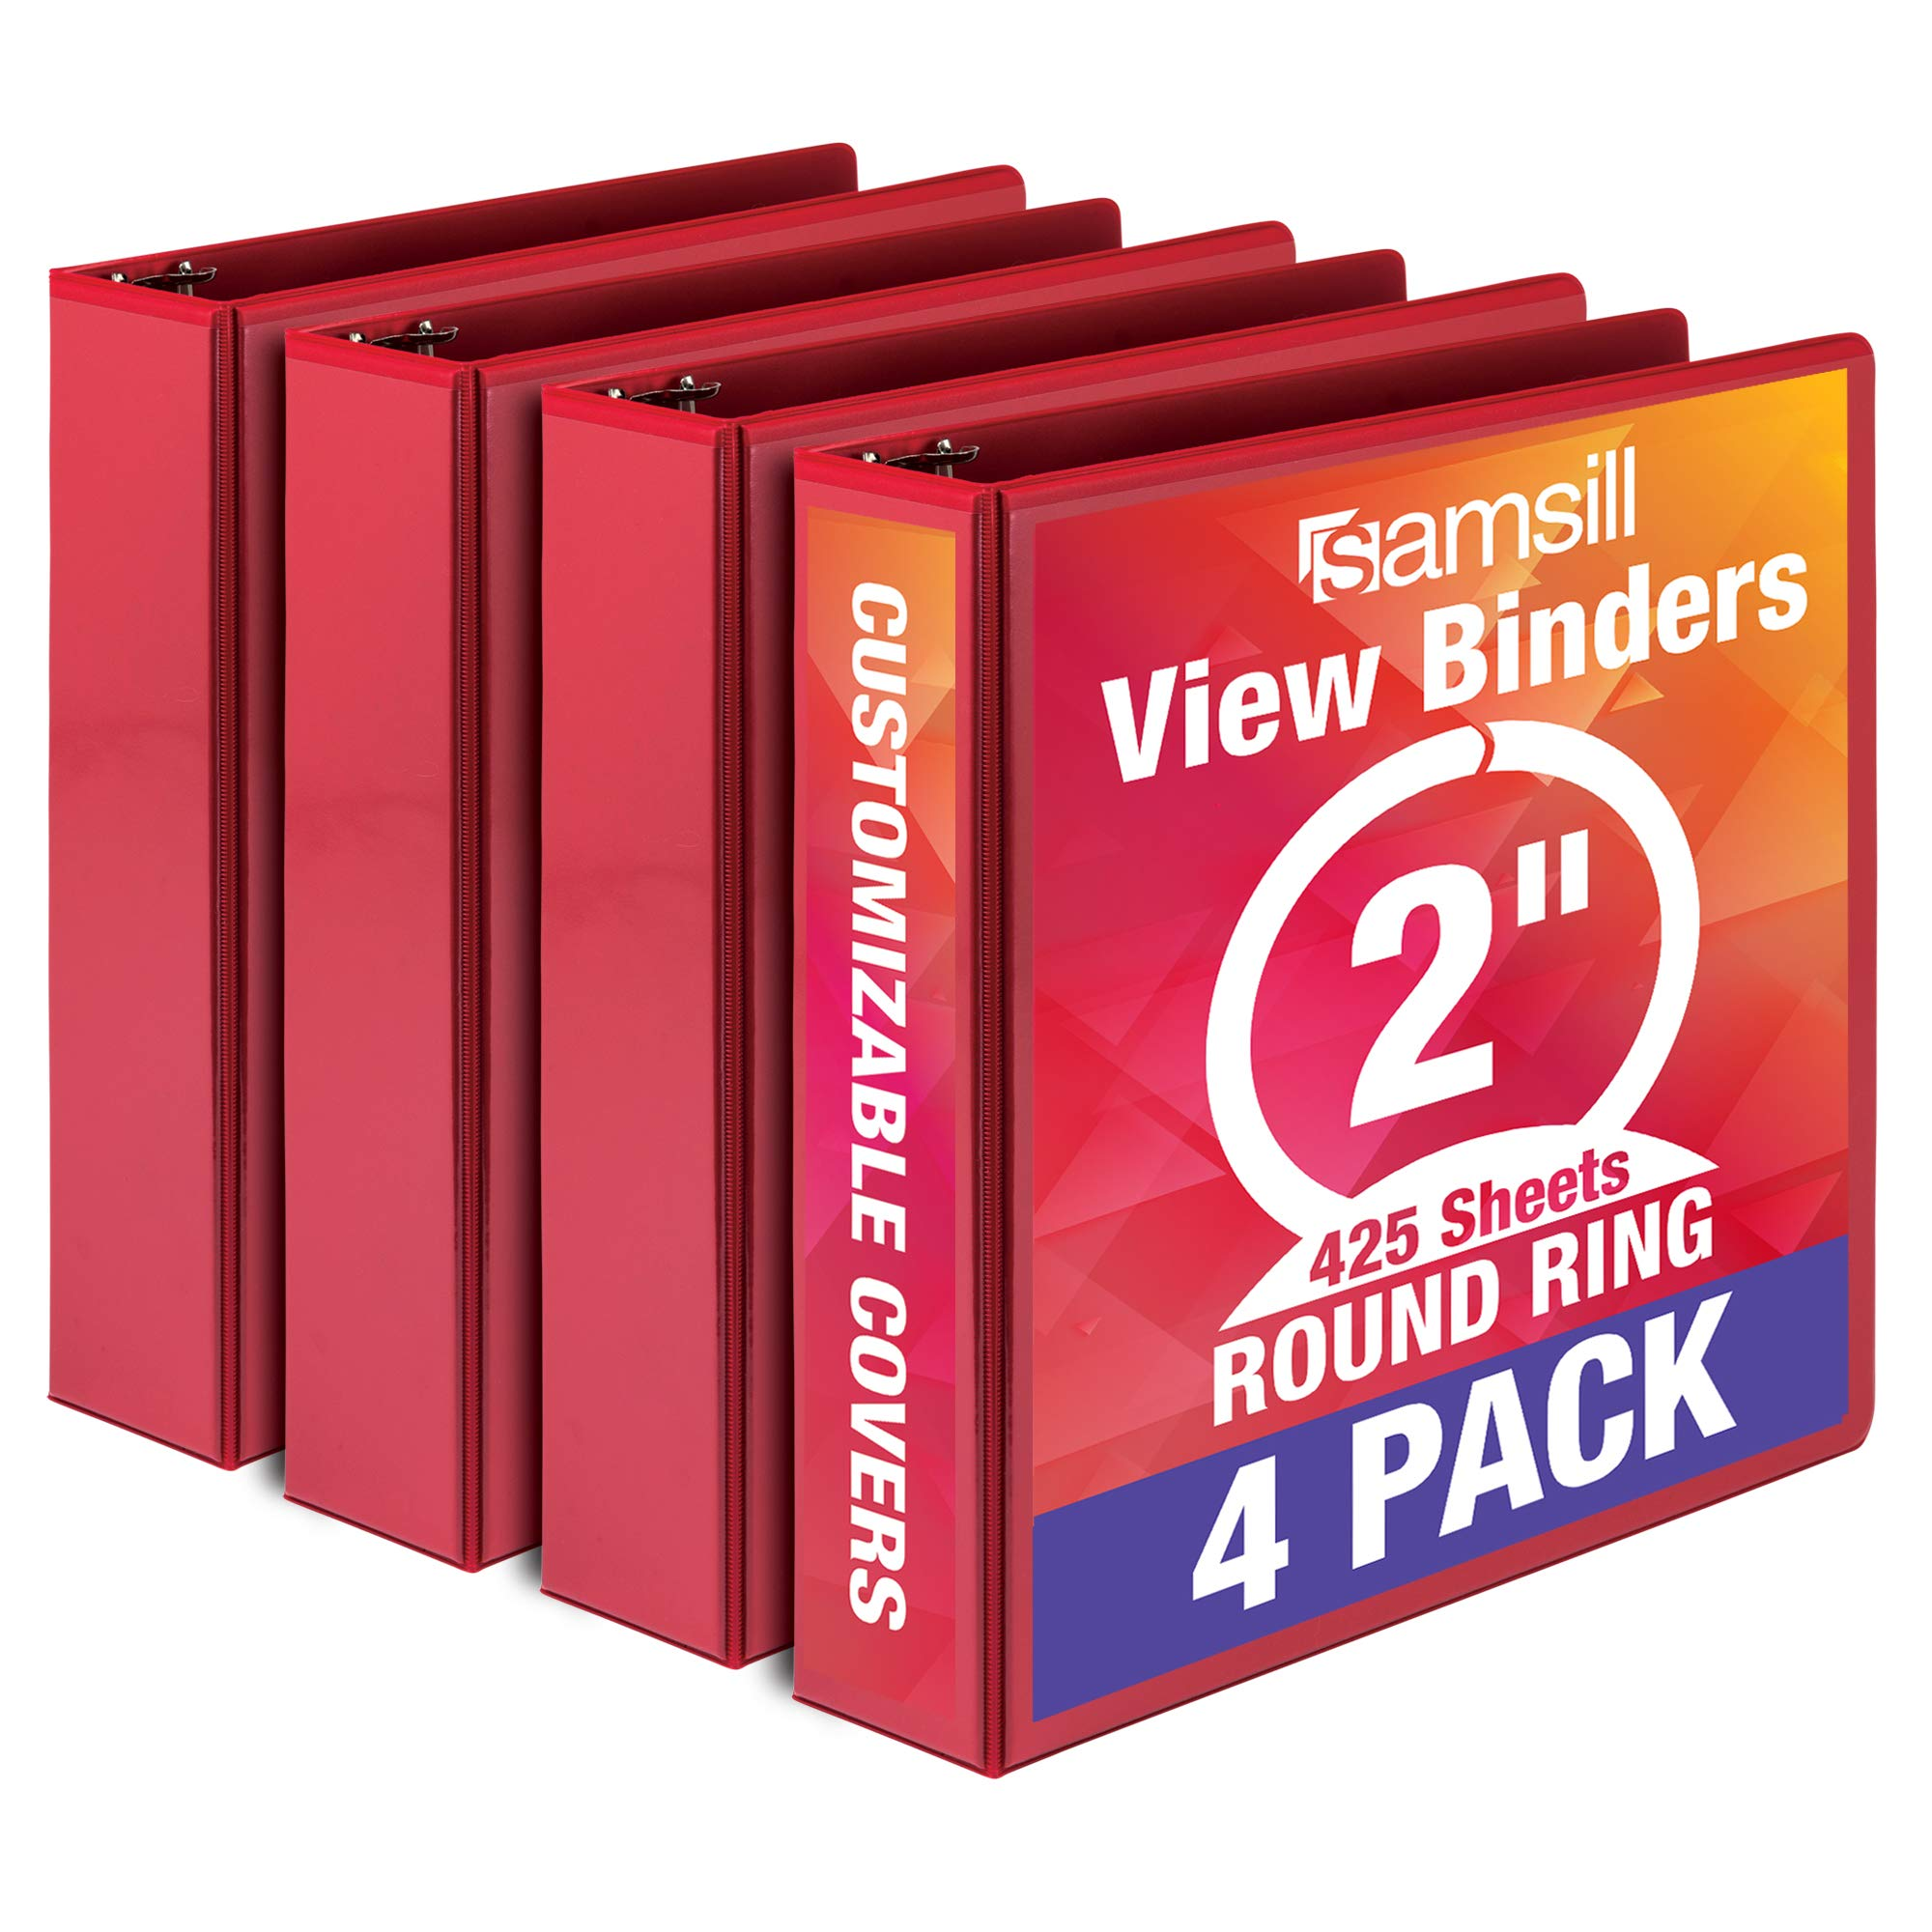 Samsill Economy 3 Ring Binder Organizer, 2 Inch Round Ring Binder, Customizable Clear View Cover, Red Bulk Binder 4 Pack